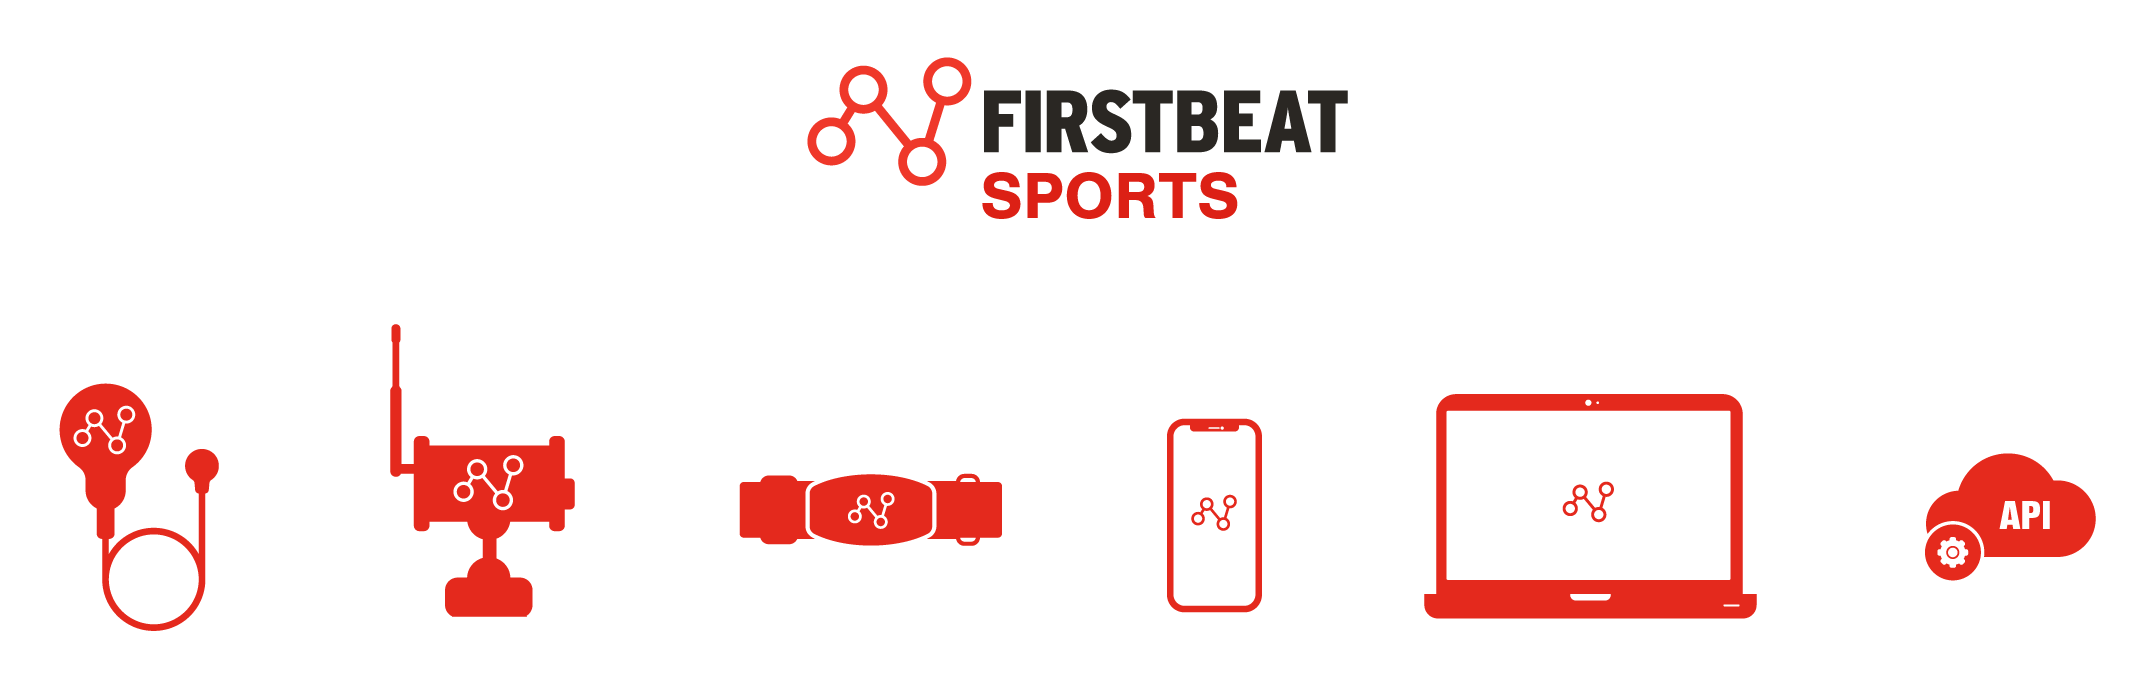 Firstbeat sports product family